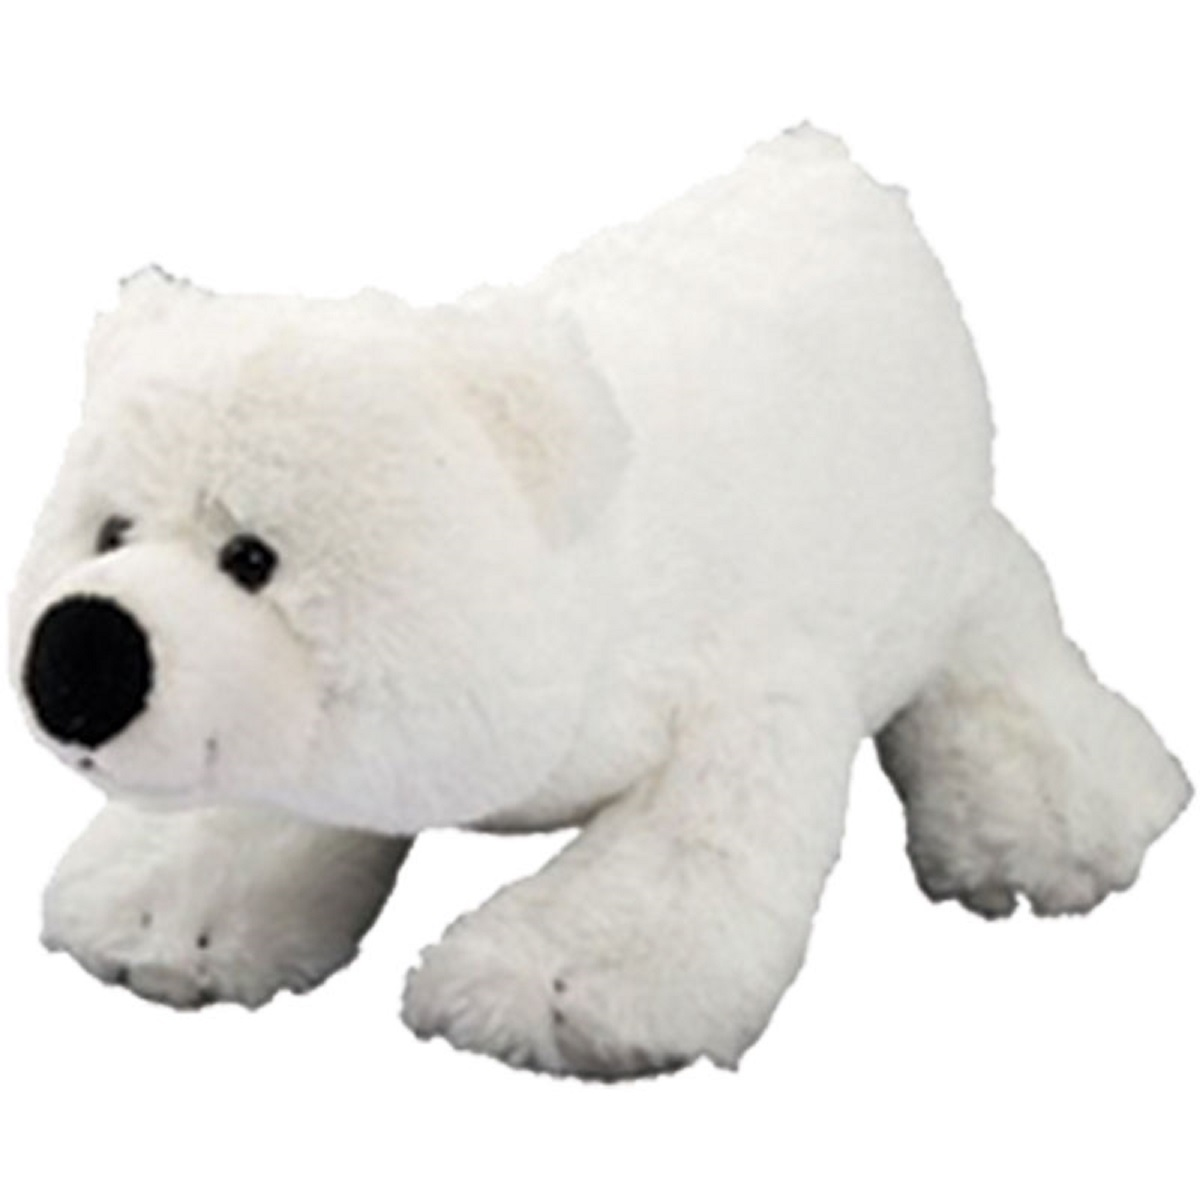 Peluche ours polaire - FREDDY - 60028 - blanc